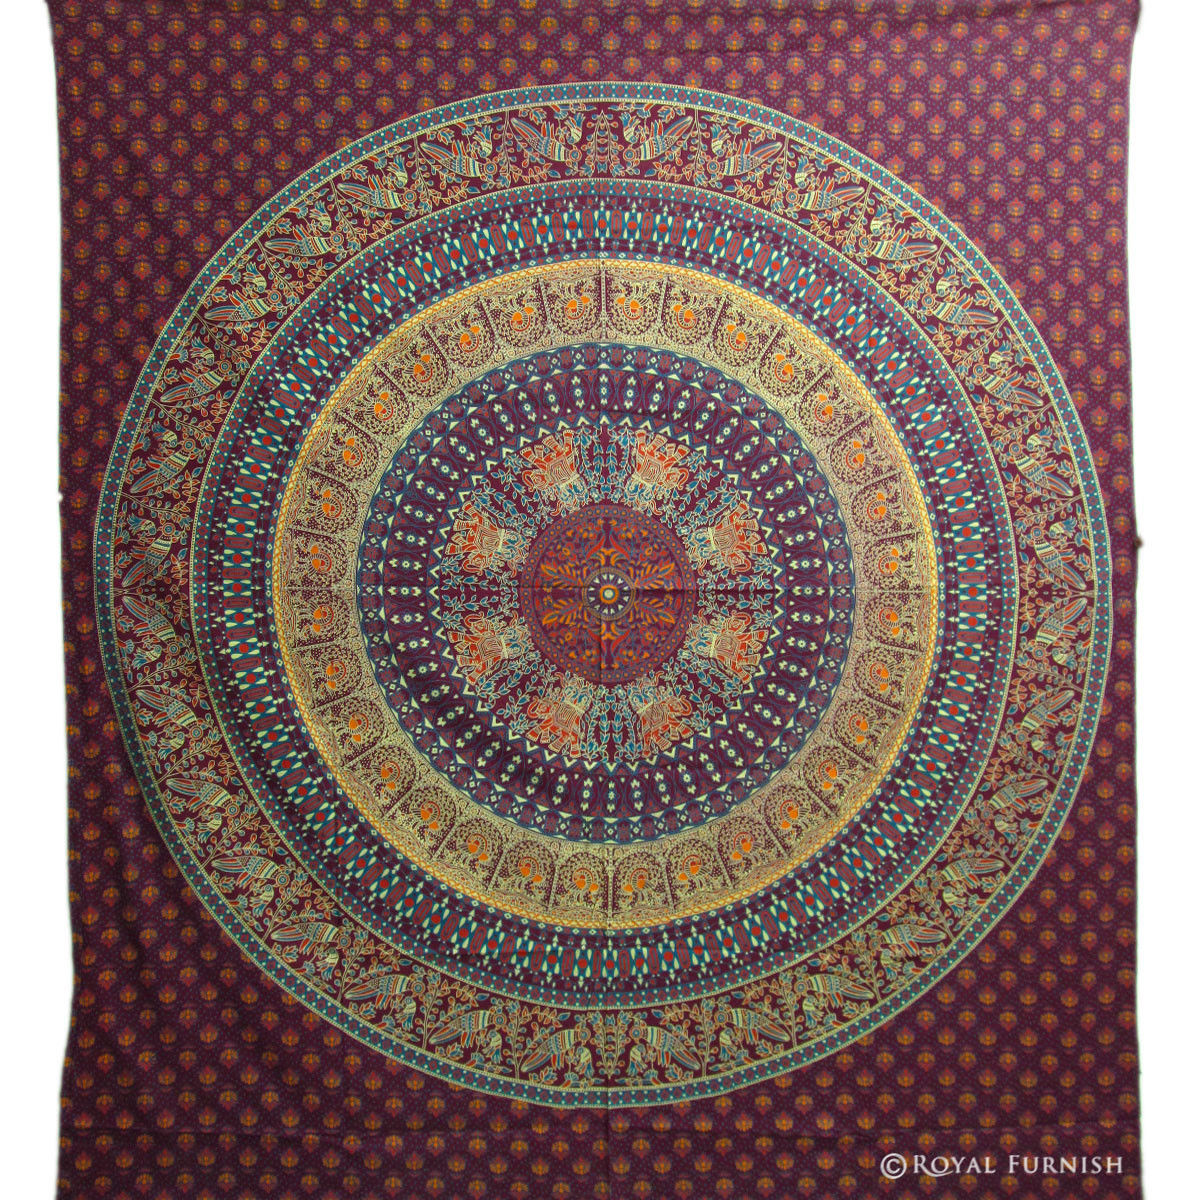 Indian Hippie Mandala Tapestry Wall Hanging Bed